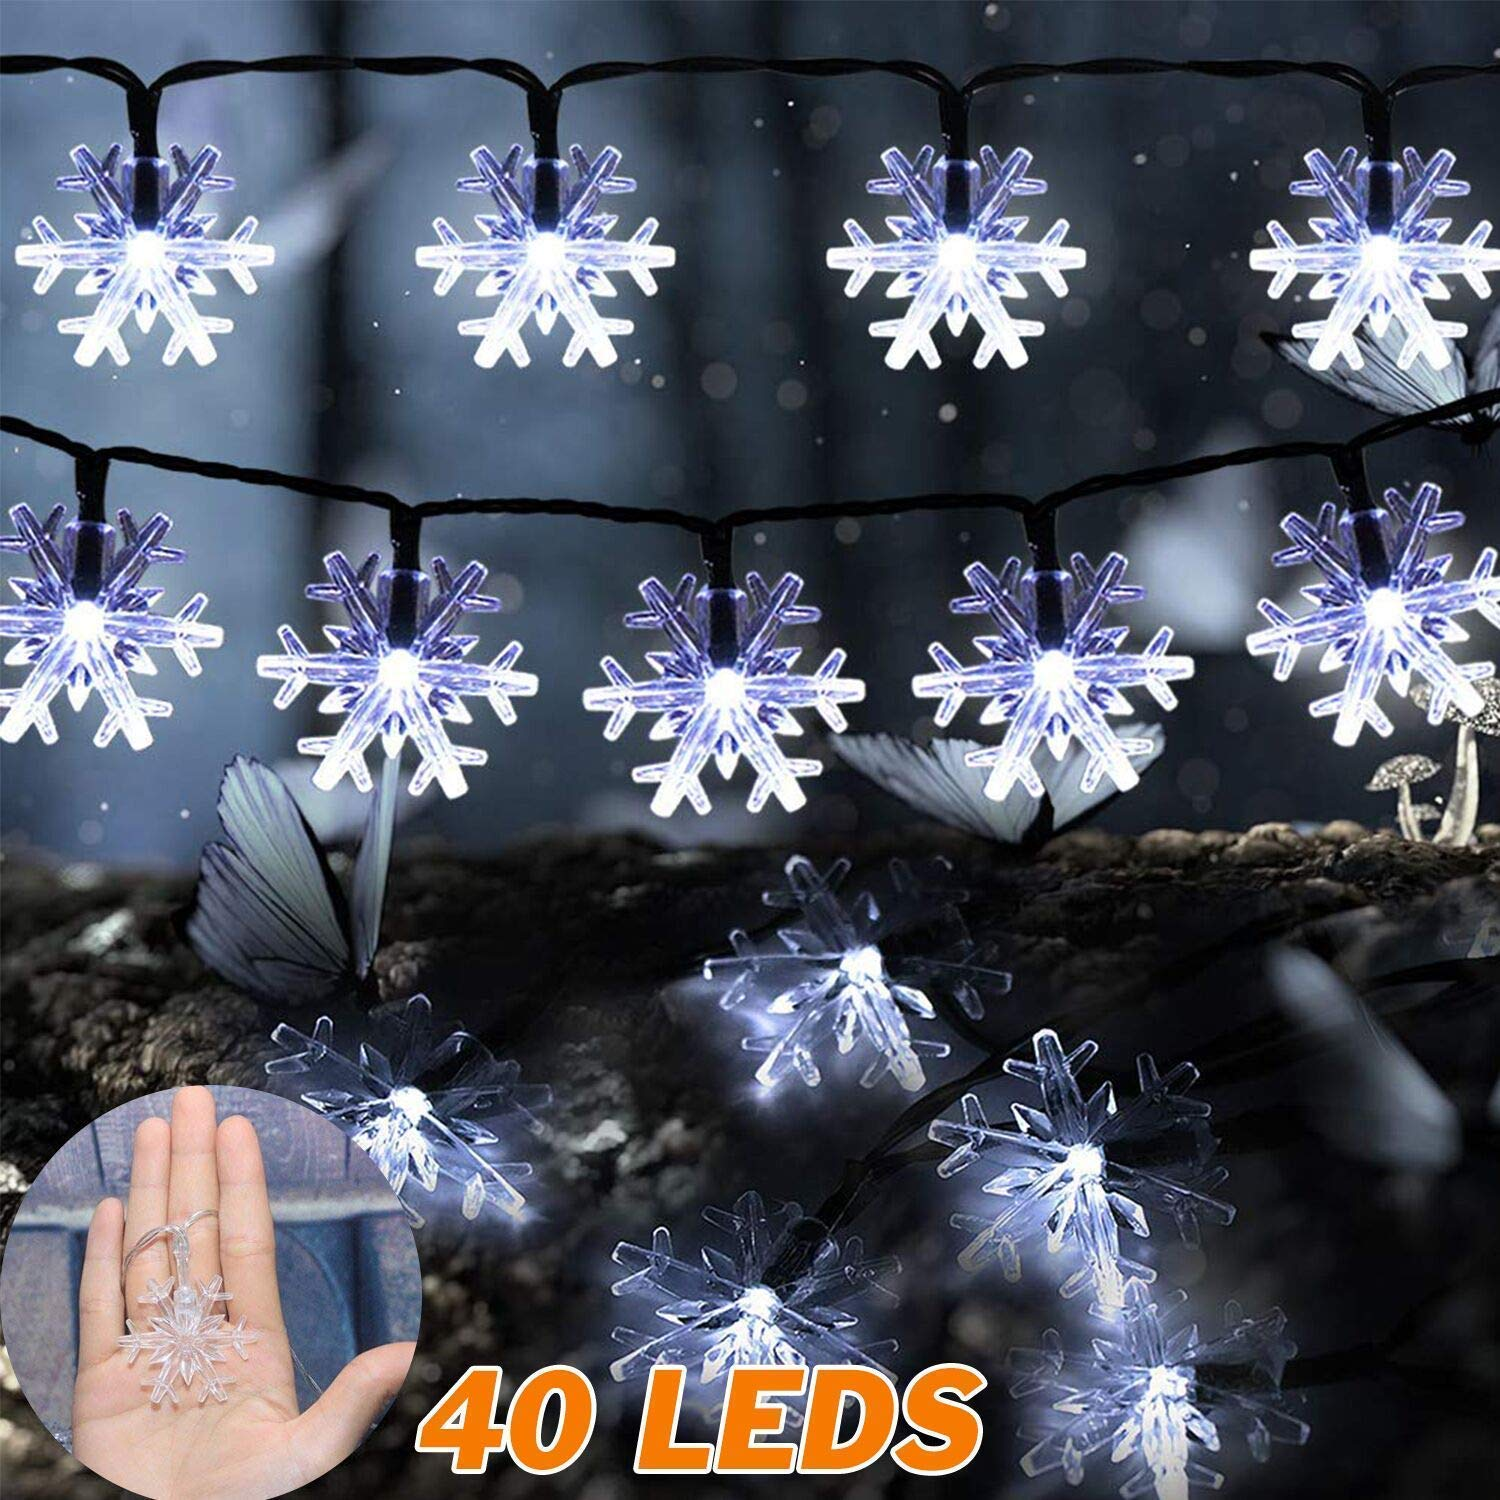 Snowflake Christmas Lights.Abask Snowflake Lights Christmas Lights String Lights 16 Ft 40 Leds Battery Operated Fairy Lights For Christmas Party Wedding White